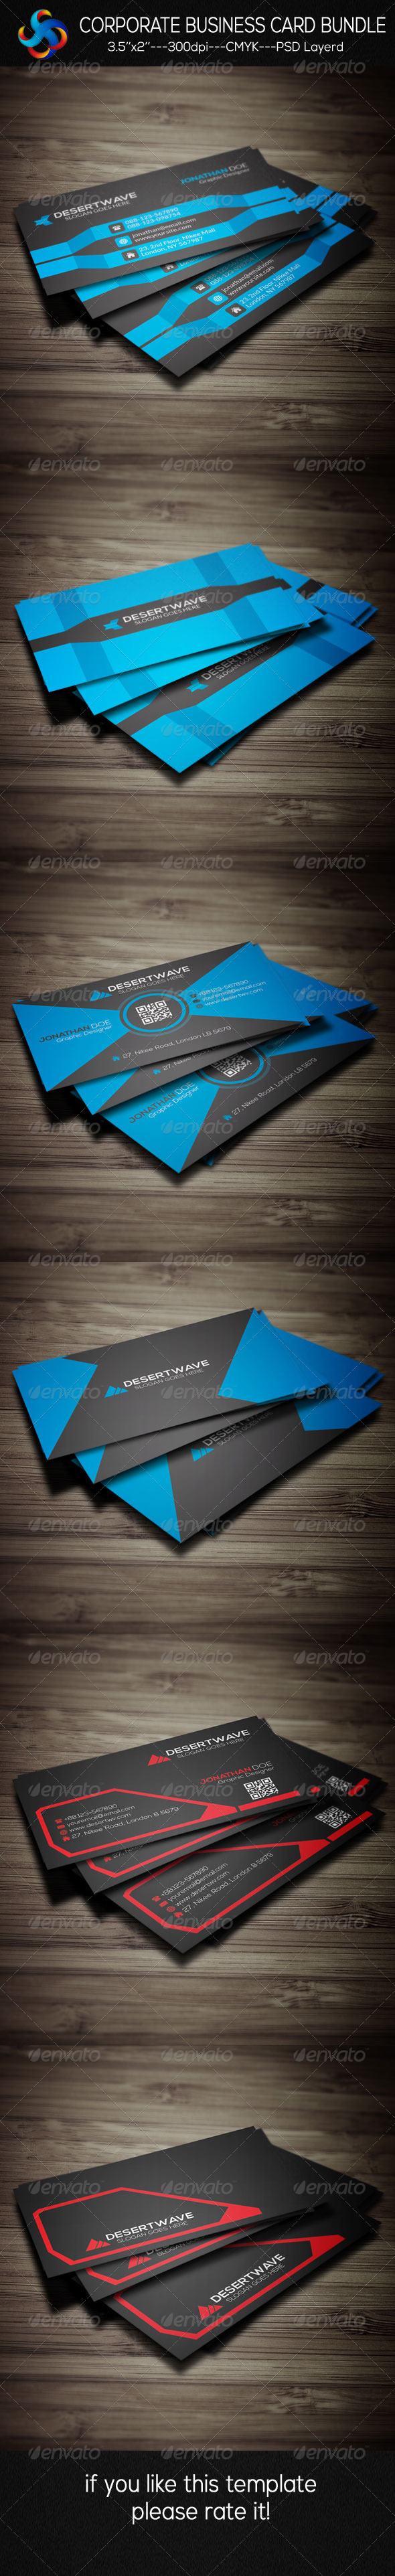 GraphicRiver Corporate Business Card Bundle 8550604